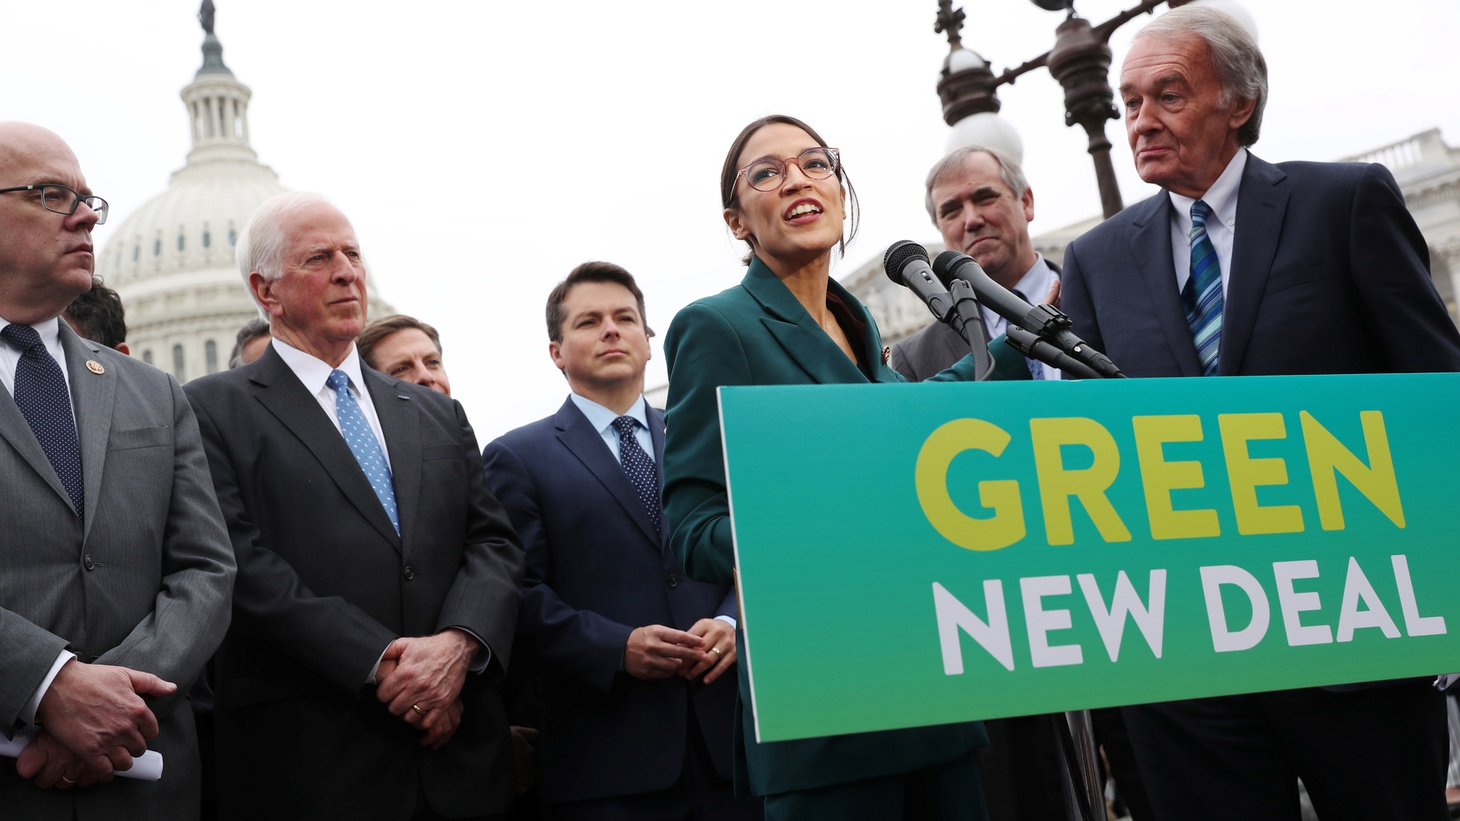 """U.S. Representative Alexandria Ocasio-Cortez (D-NY) and Senator Ed Markey (D-MA) hold a news conference for their proposed """"Green New Deal"""" to achieve net-zero greenhouse gas emissions in 10 years, at the U.S. Capitol in Washington, U.S. February 7, 2019."""